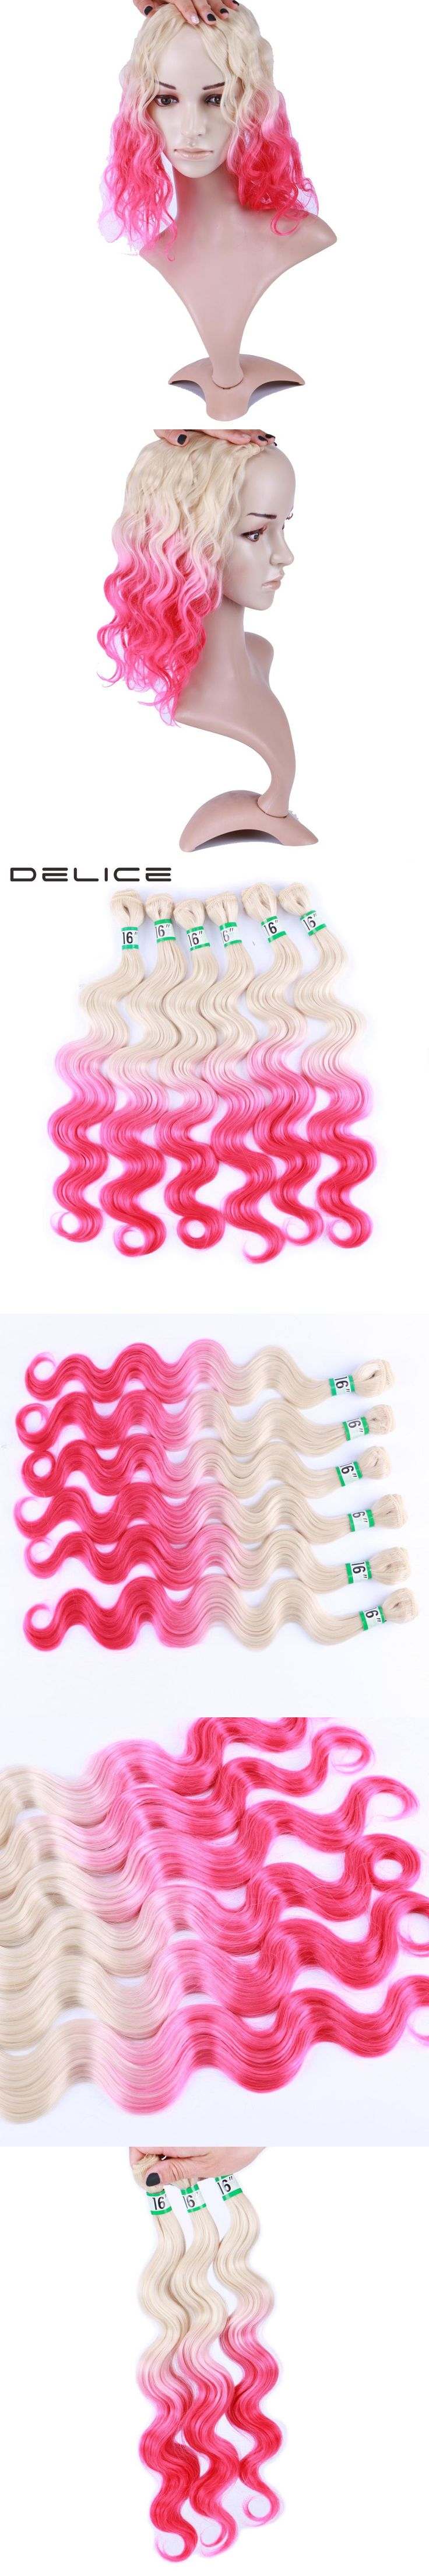 DELICE 6pcs/pack 16inch Blonde Pink Ombre Color Body Wave Hair Weaving Synthetic Hair Extensions Weft Bundles For Women